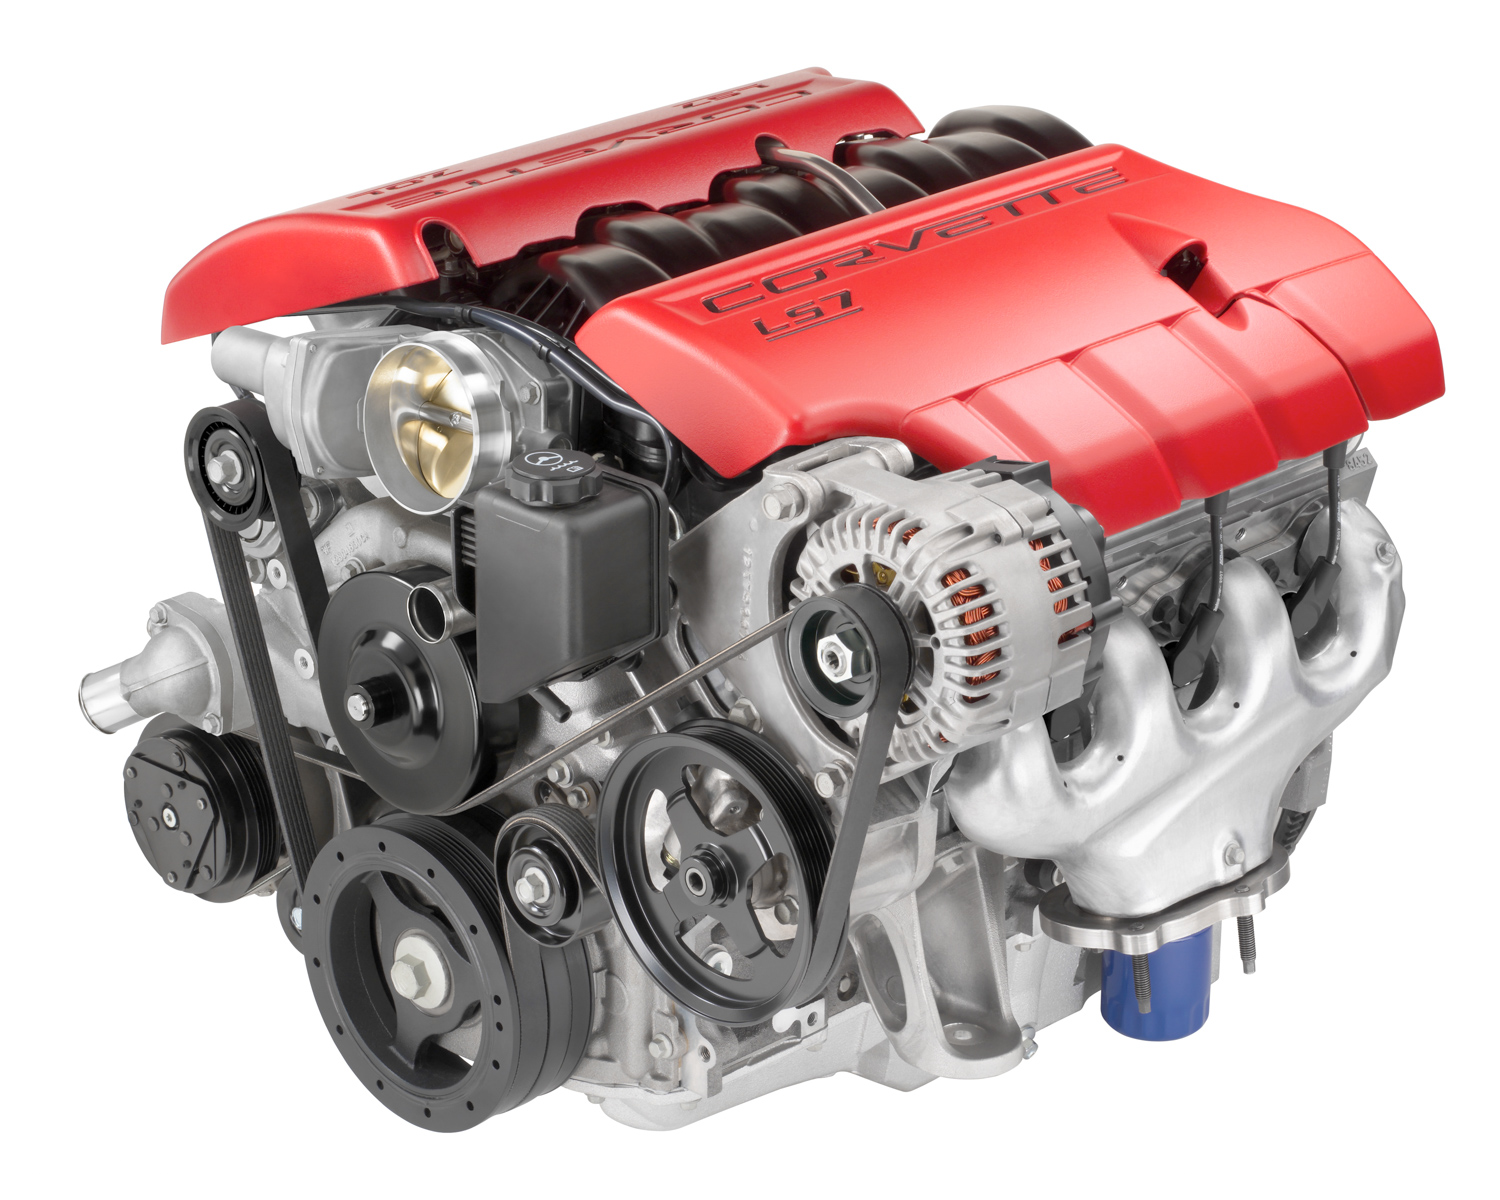 LS7 small block engine